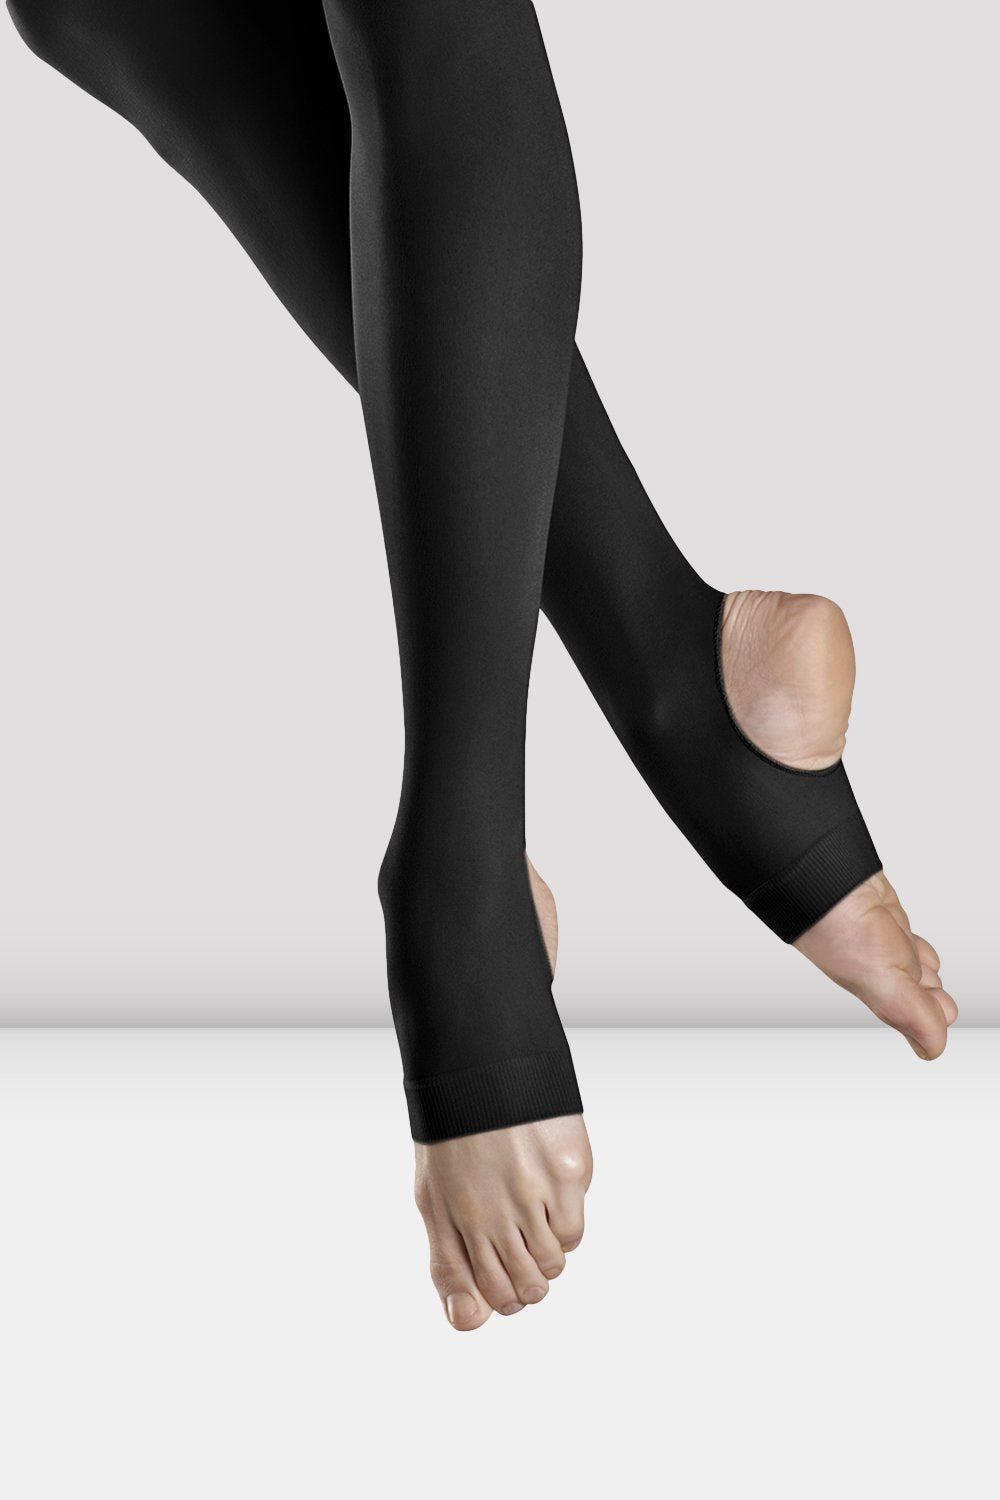 Ladies Endura Stirrup Tights - BLOCH US